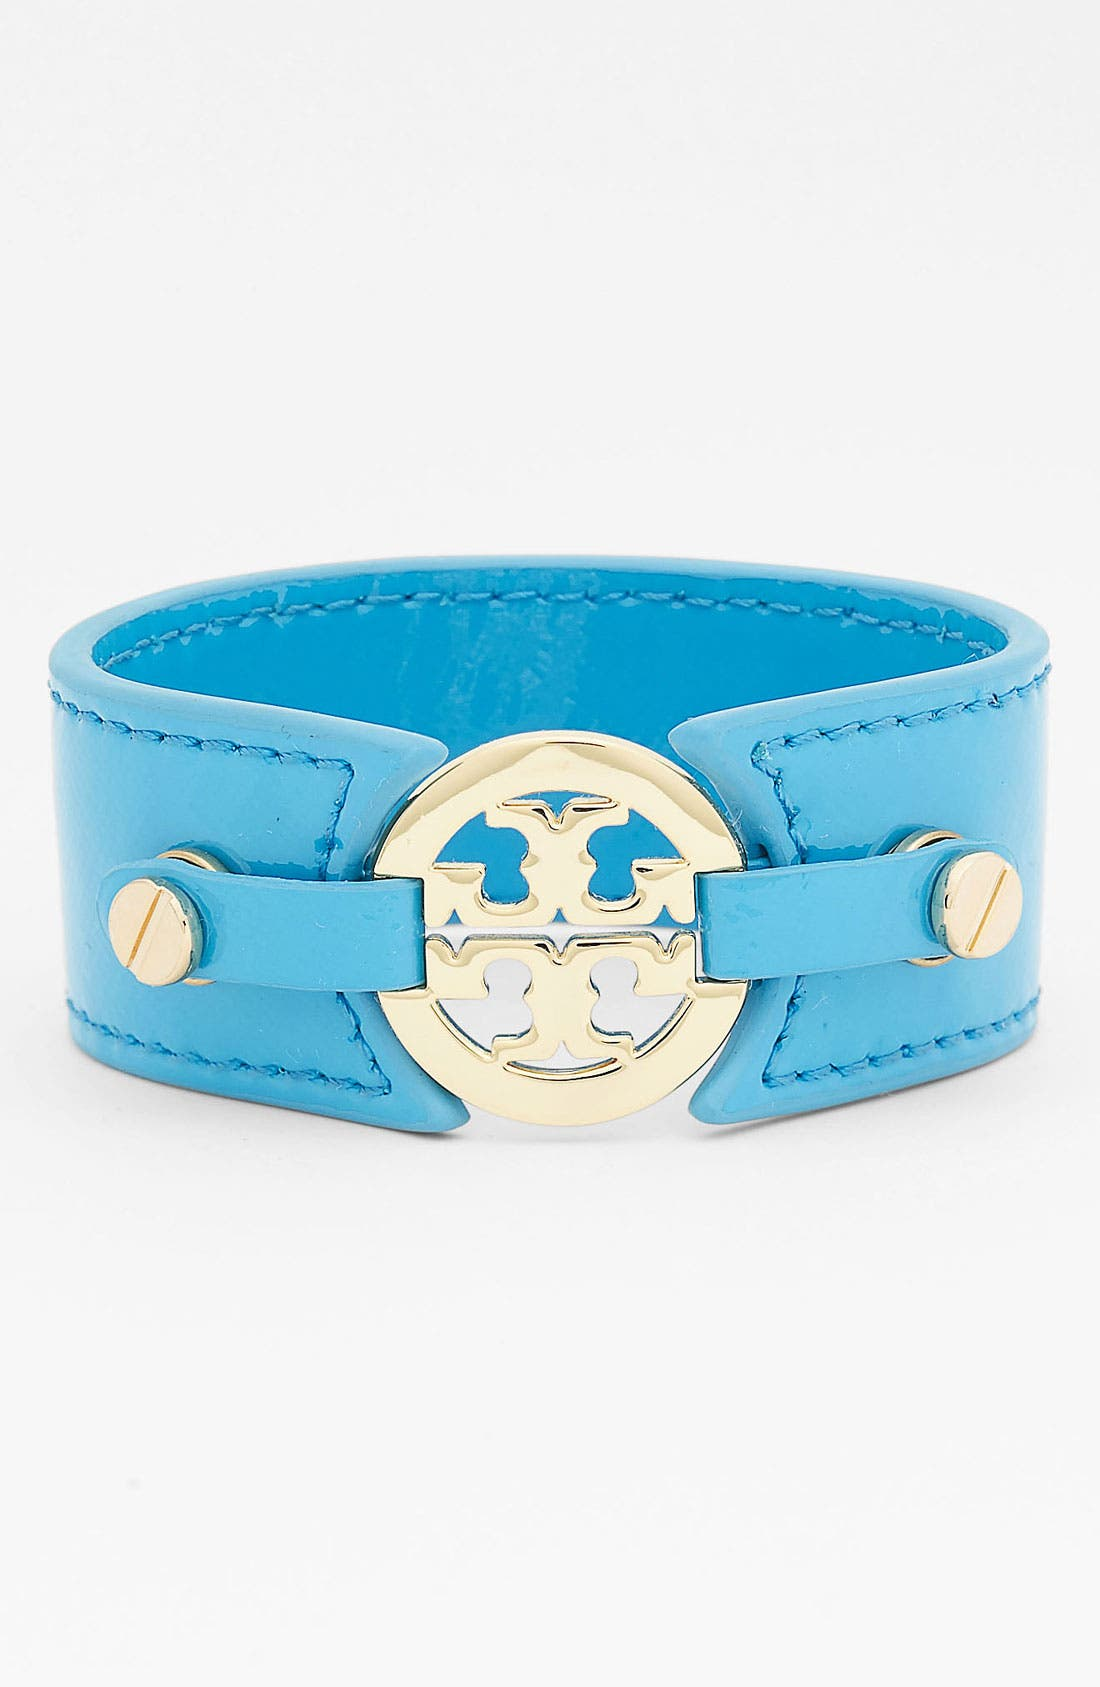 Main Image - Tory Burch Patent Leather Bracelet